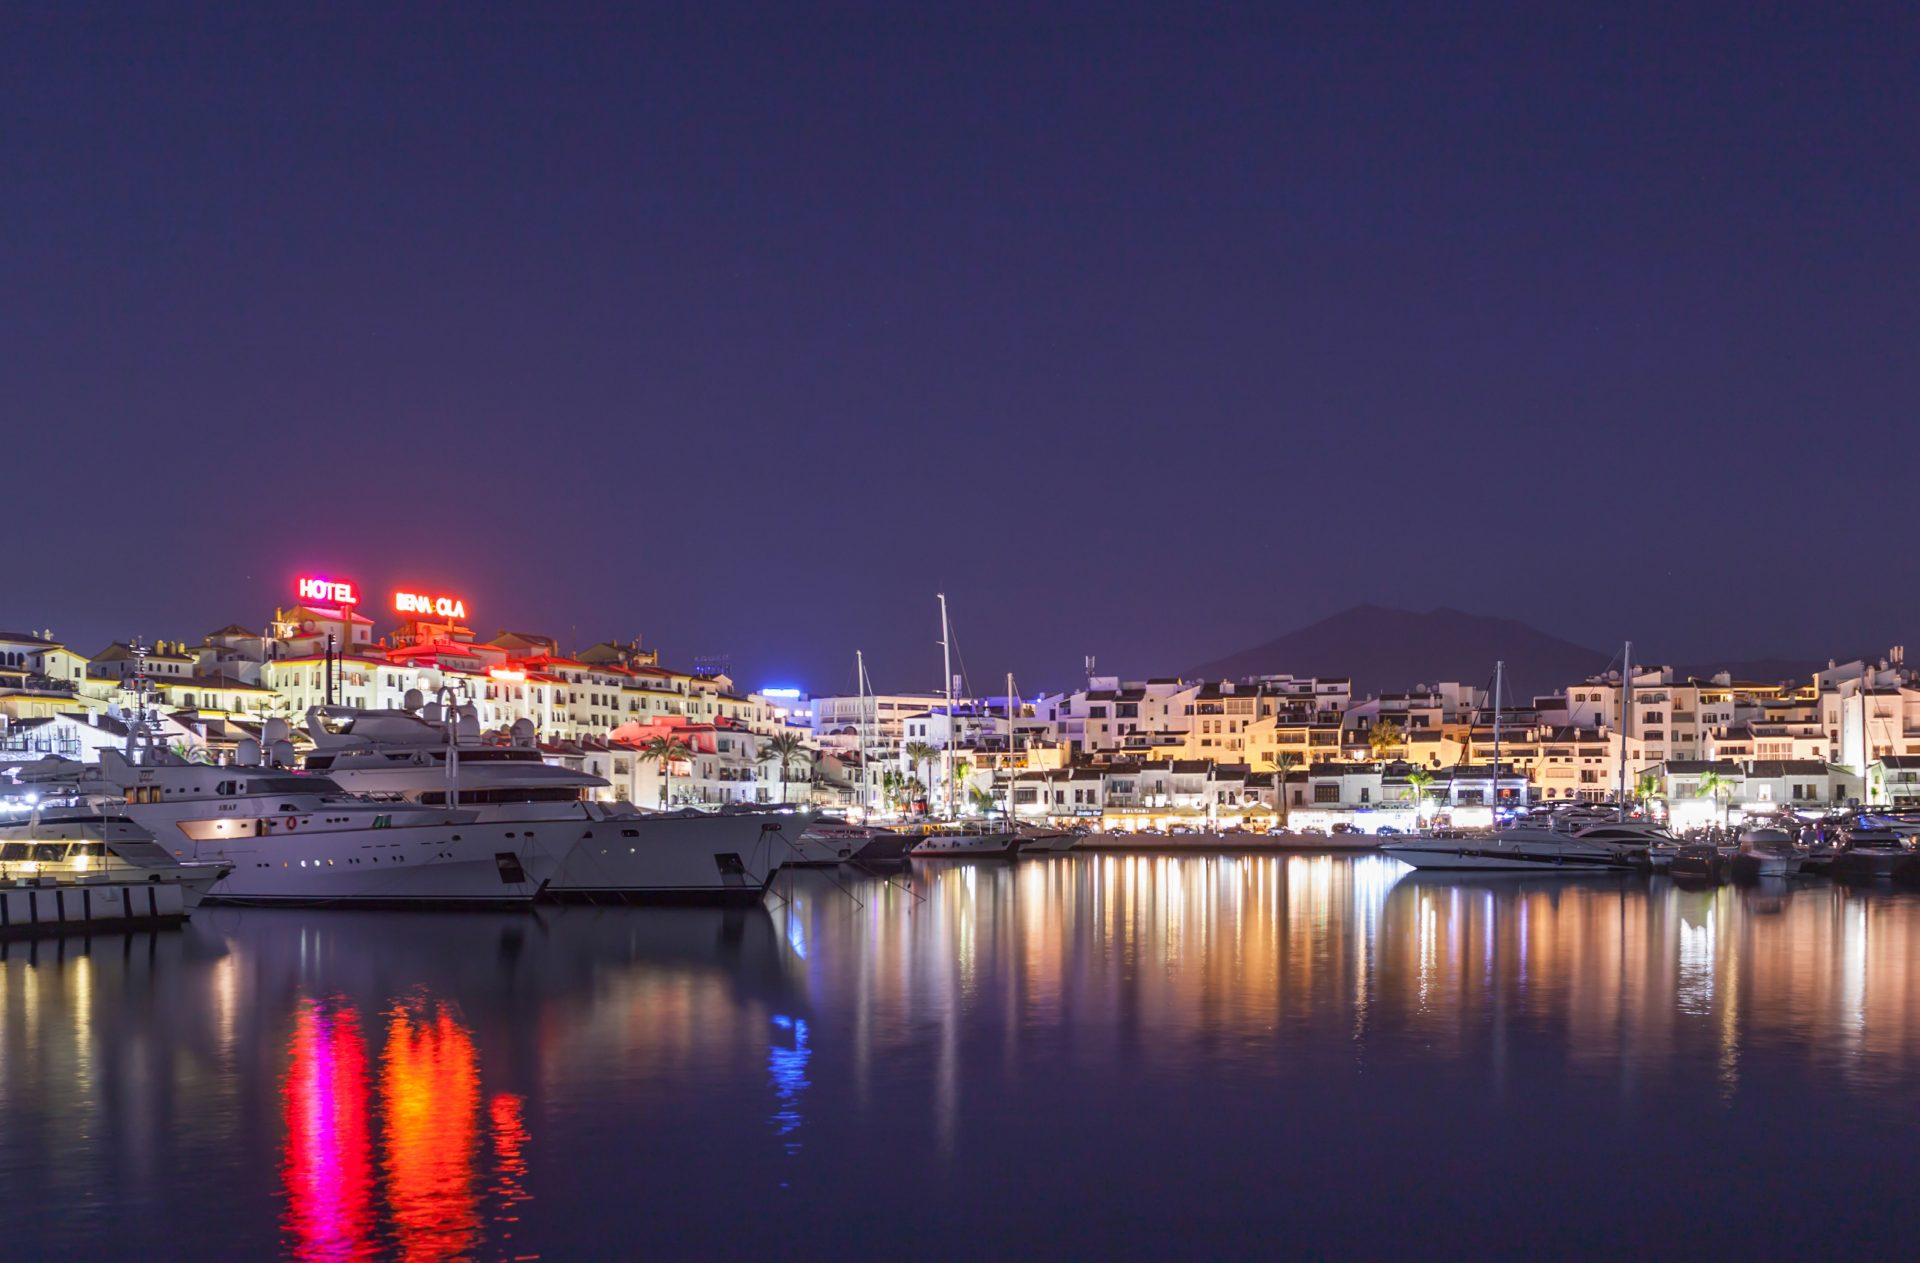 Do you need a transfer to Puerto Banús? Let us help!